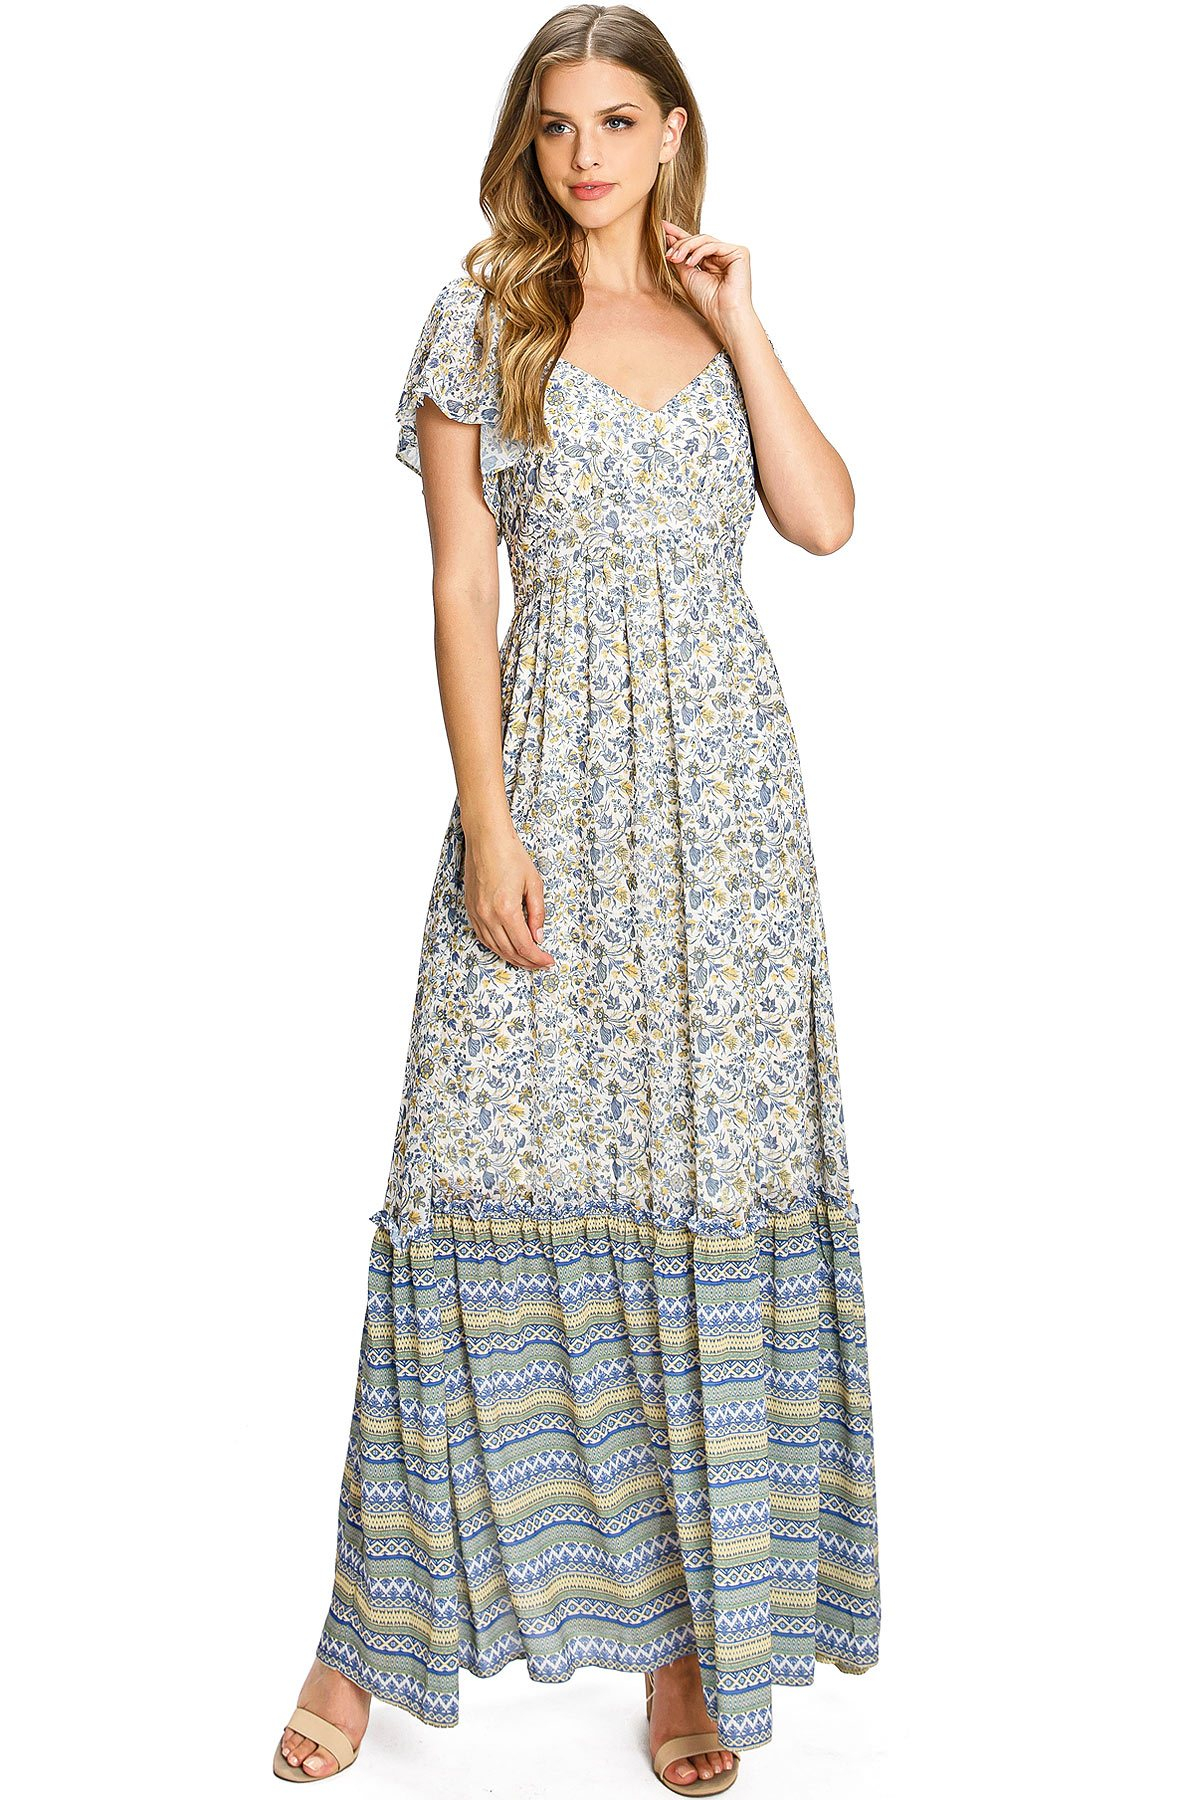 Image of Fable Floral Maxi Dress